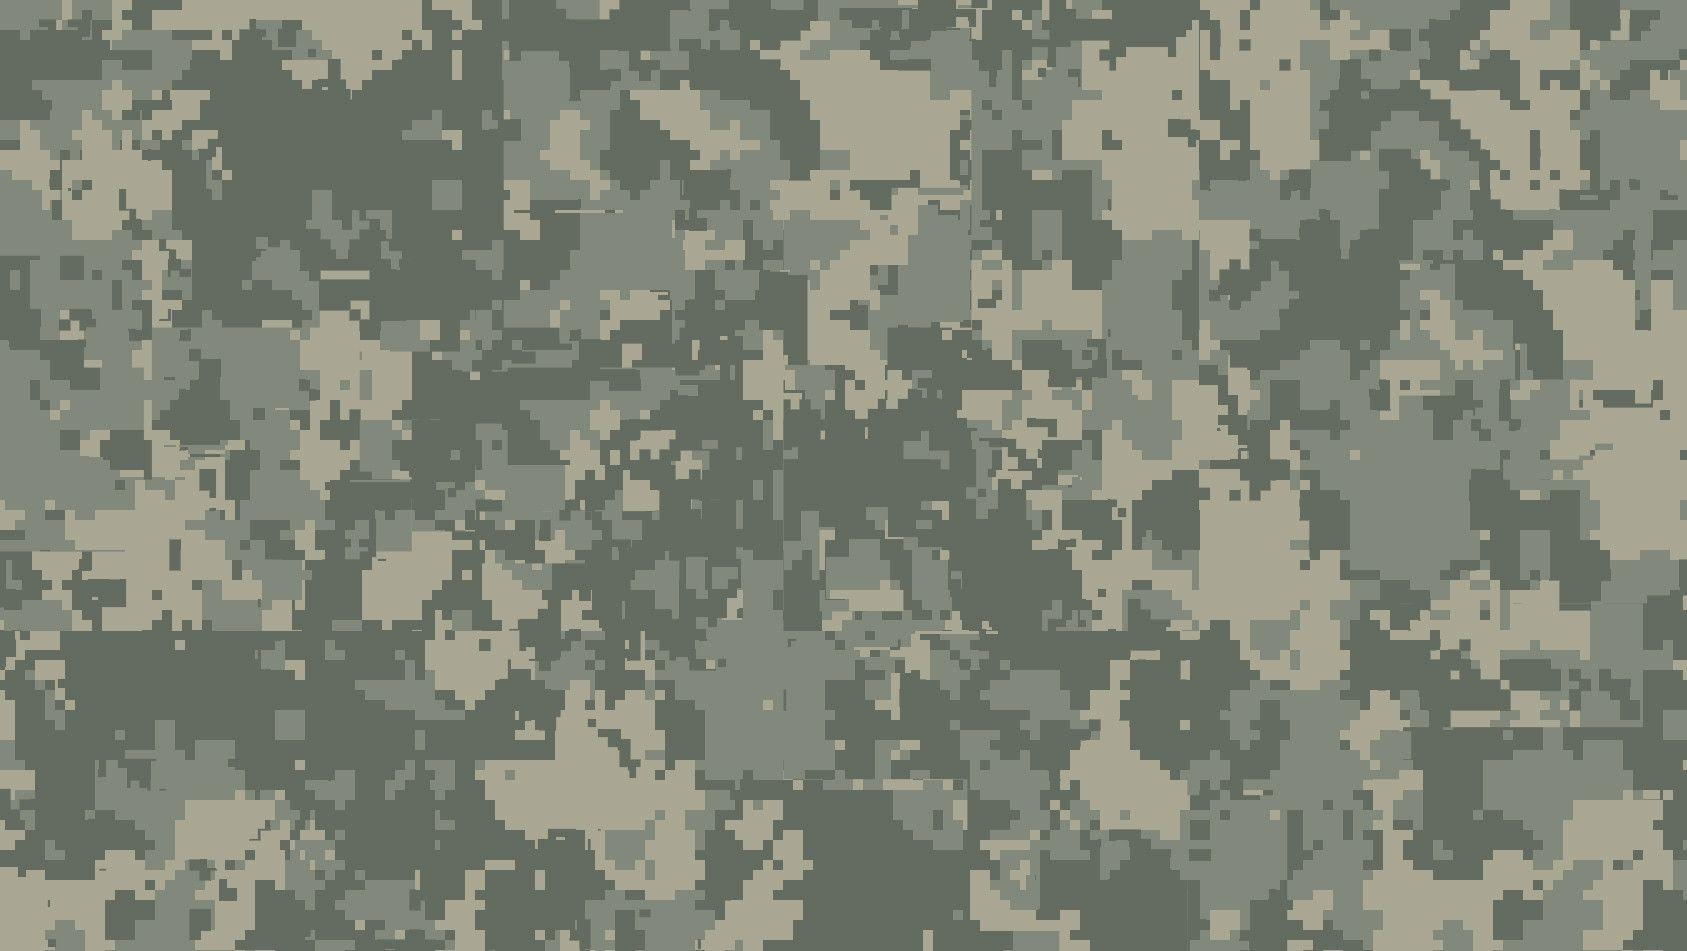 28 Free Camouflage Hd And Desktop Backgrounds: Camo Computer Wallpapers